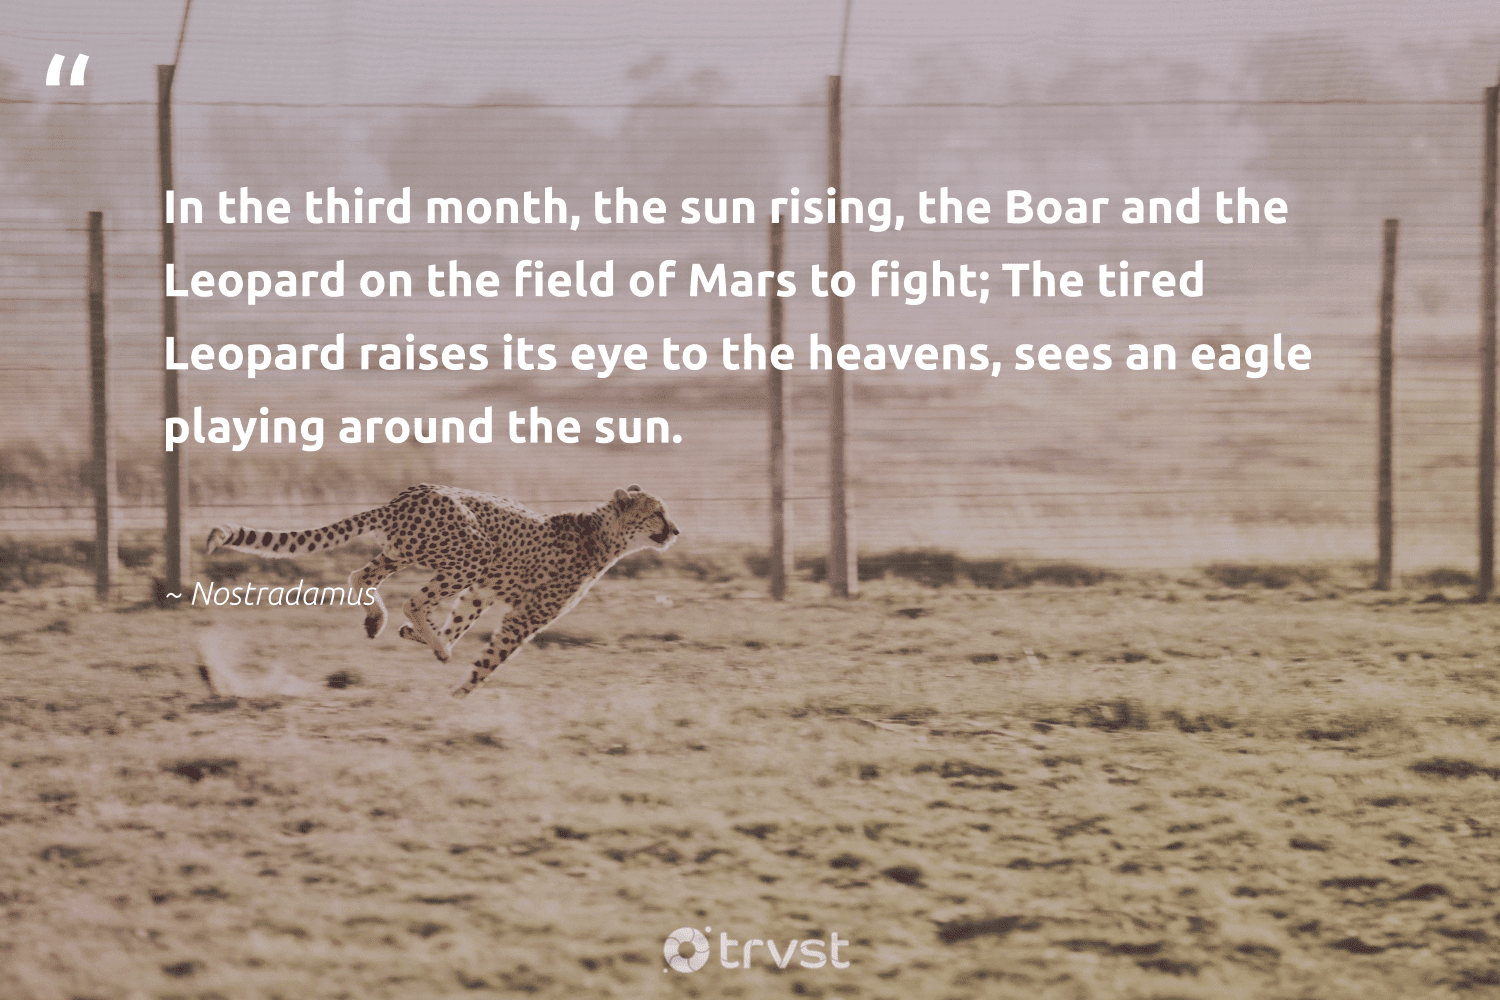 """""""In the third month, the sun rising, the Boar and the Leopard on the field of Mars to fight; The tired Leopard raises its eye to the heavens, sees an eagle playing around the sun.""""  - Nostradamus #trvst #quotes #leopard #wildlife #beinspired #biodiversity #gogreen #leopards #impact #protectnature #socialchange #nature"""